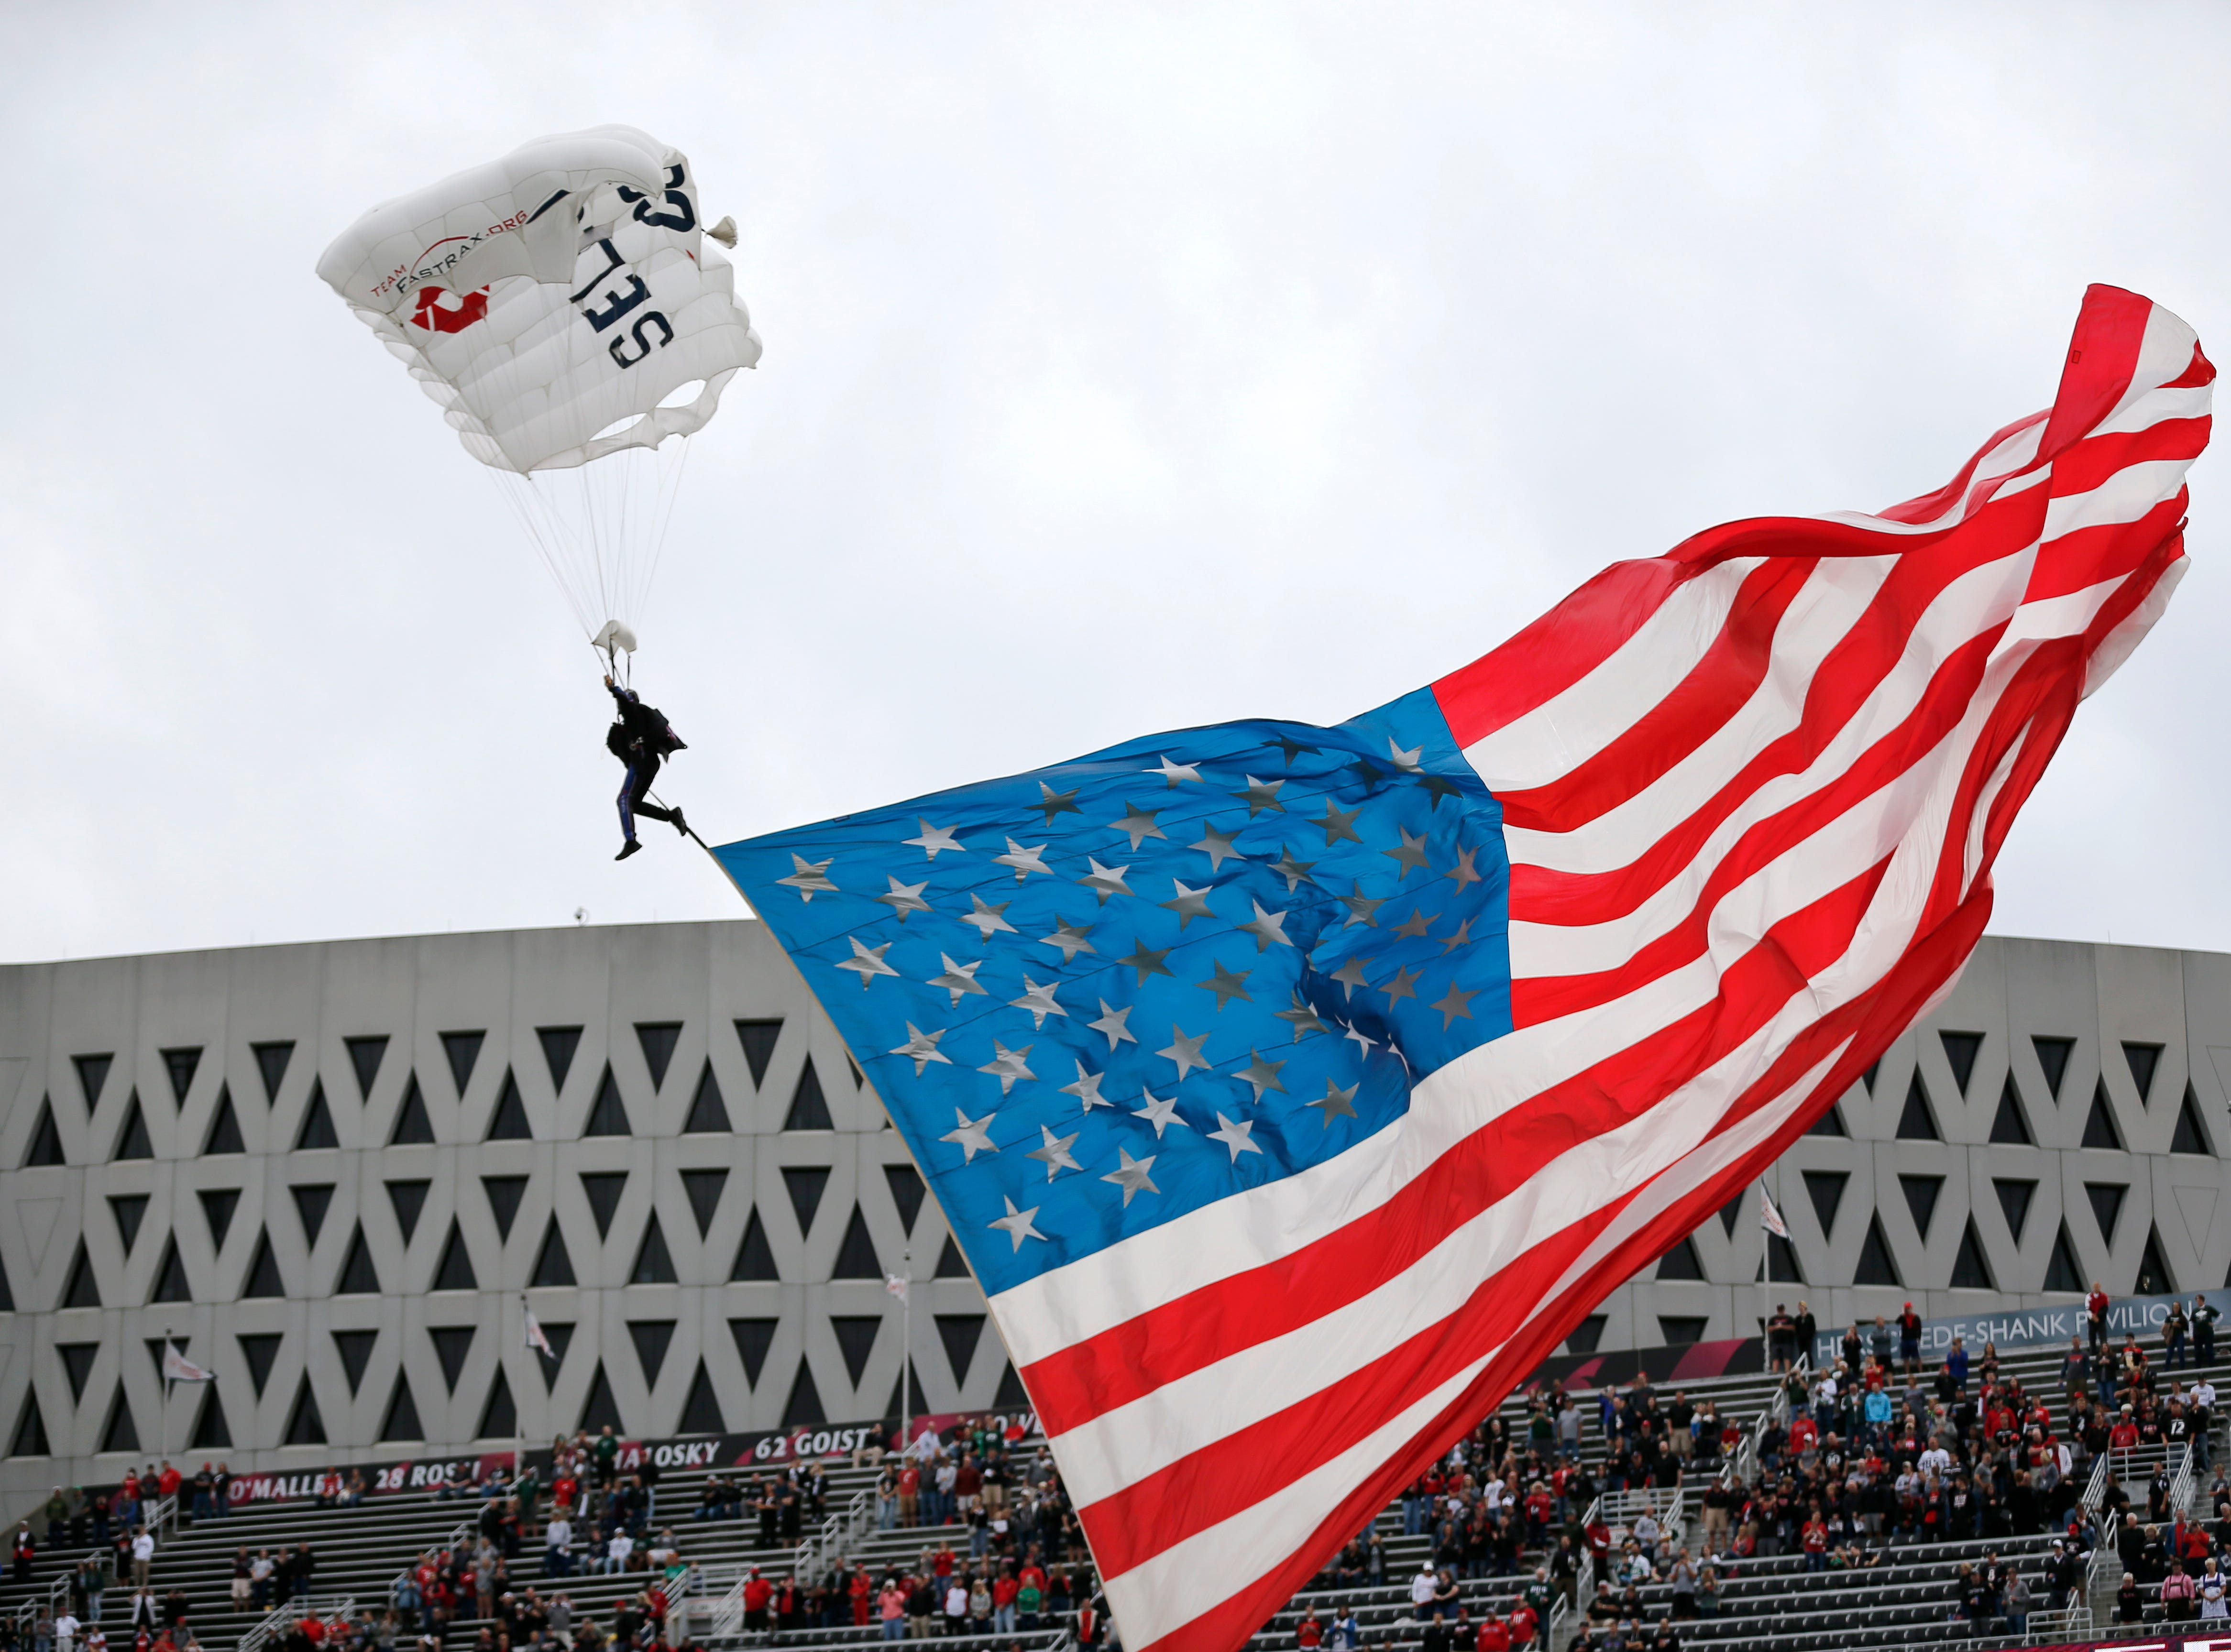 The American flag is delivered red by skydiver before the first quarter of the NCAA football game between the Cincinnati Bearcats and the Ohio Bobcats at Nippert Stadium on the University of Cincinnati campus in Cincinnati on Saturday, Sept. 22, 2018. The Bobcats led 24-7 at halftime.